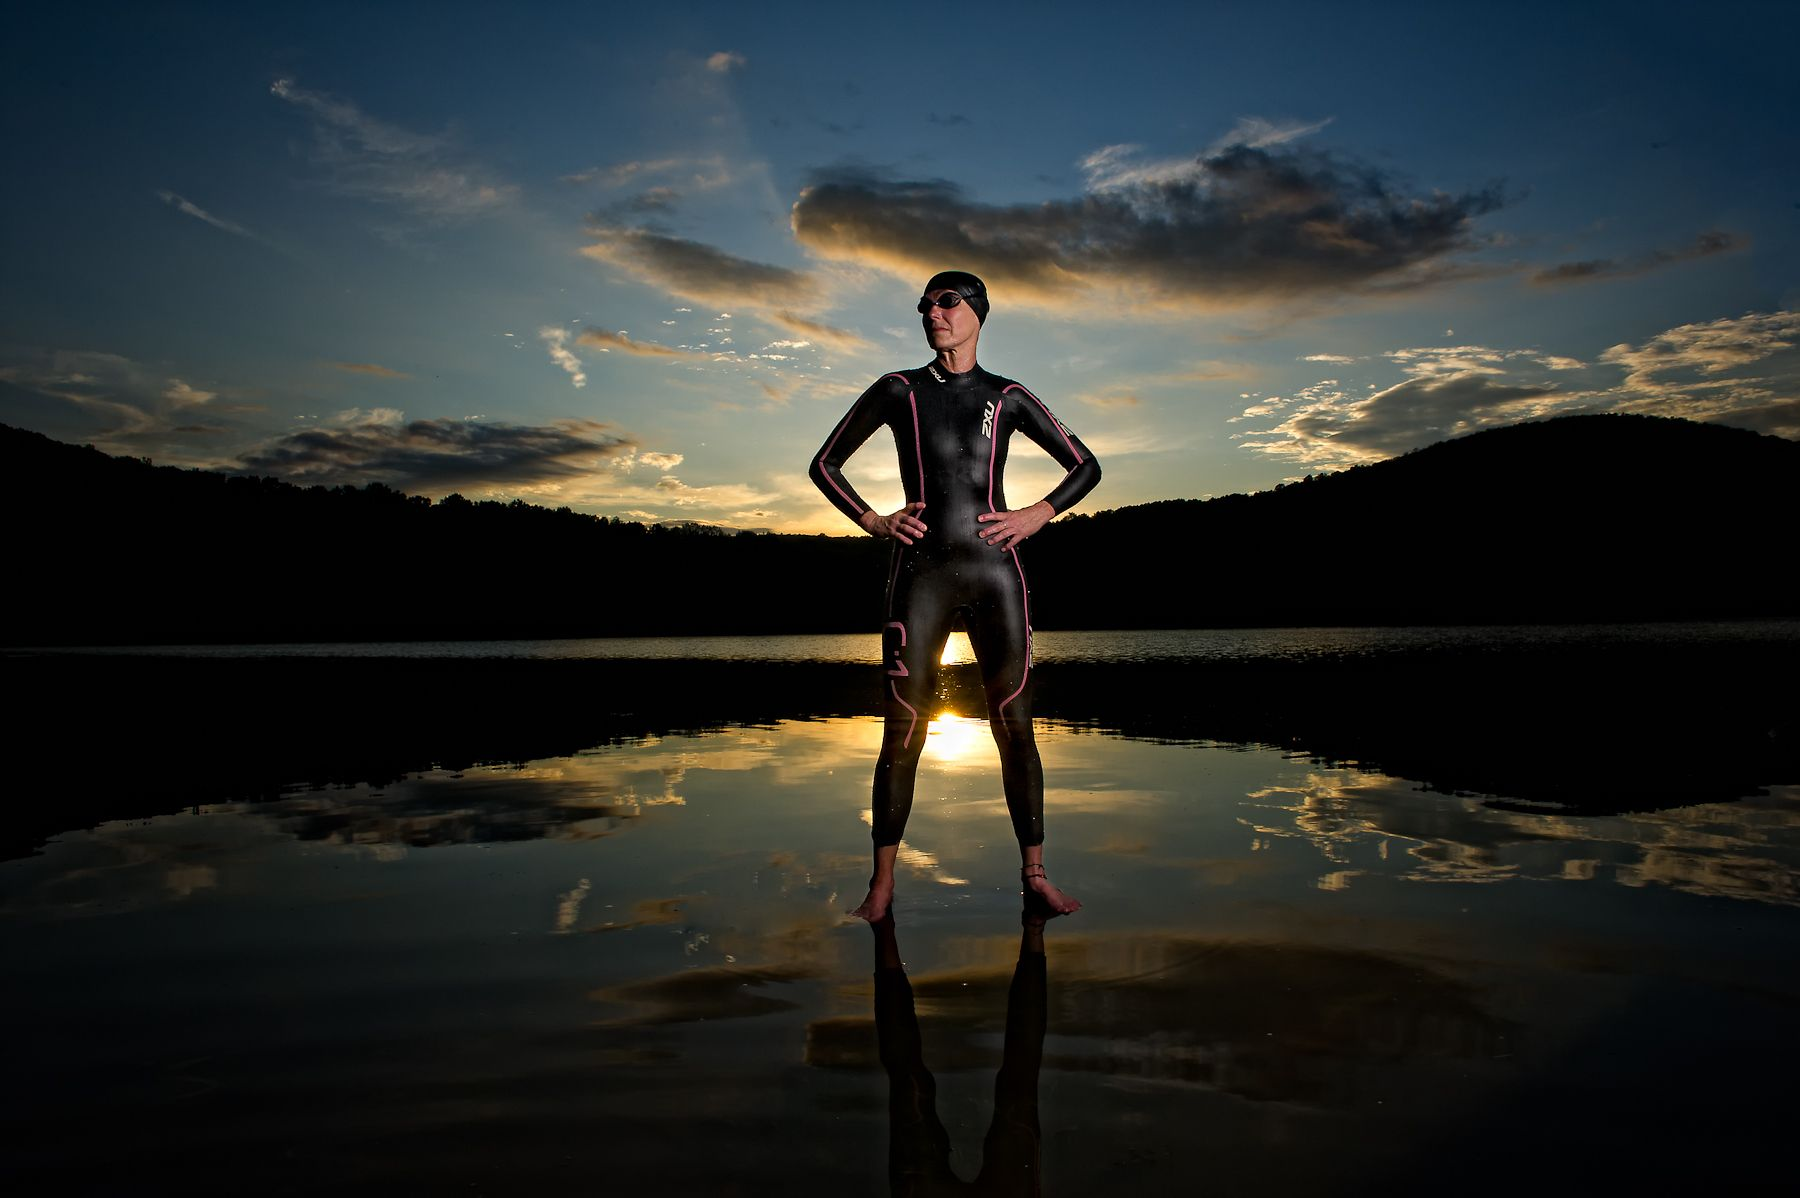 1triathlete_shoot_1_2.jpg